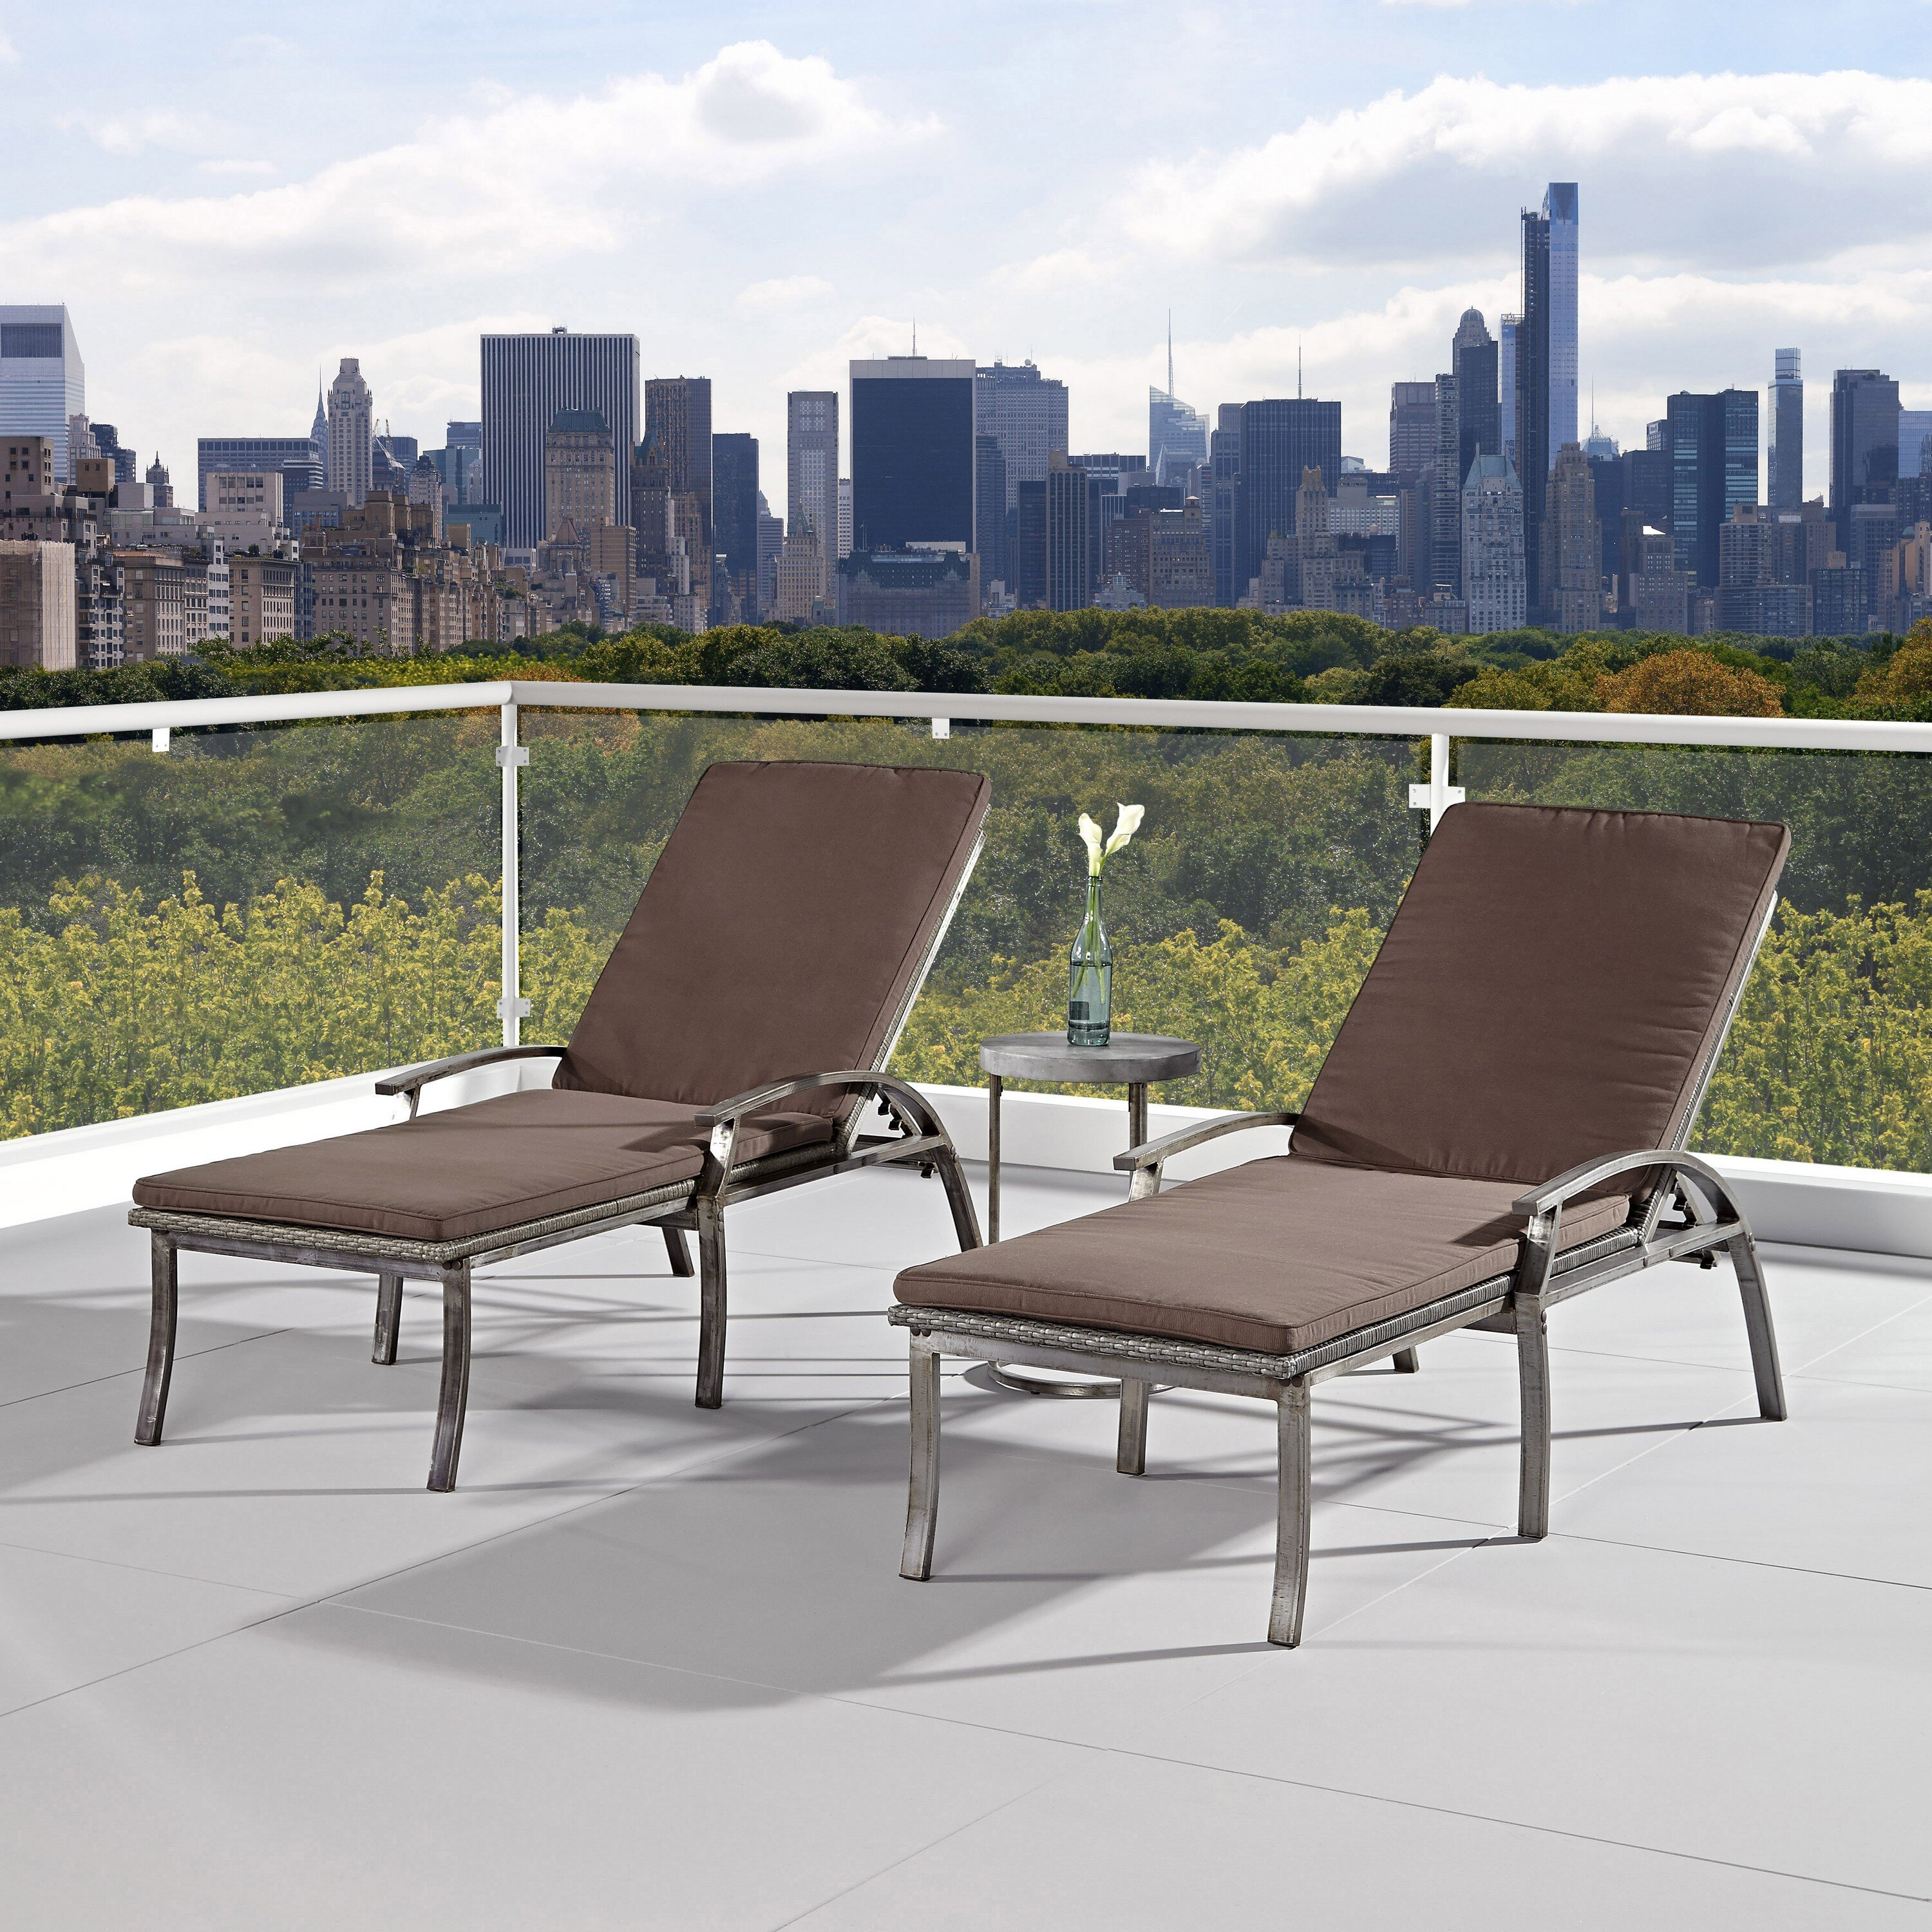 Outdoor chaise outdoor chaise lounge chair cushions living rooms - Home Styles Urban Chaise Lounge With Cushions Wayfair